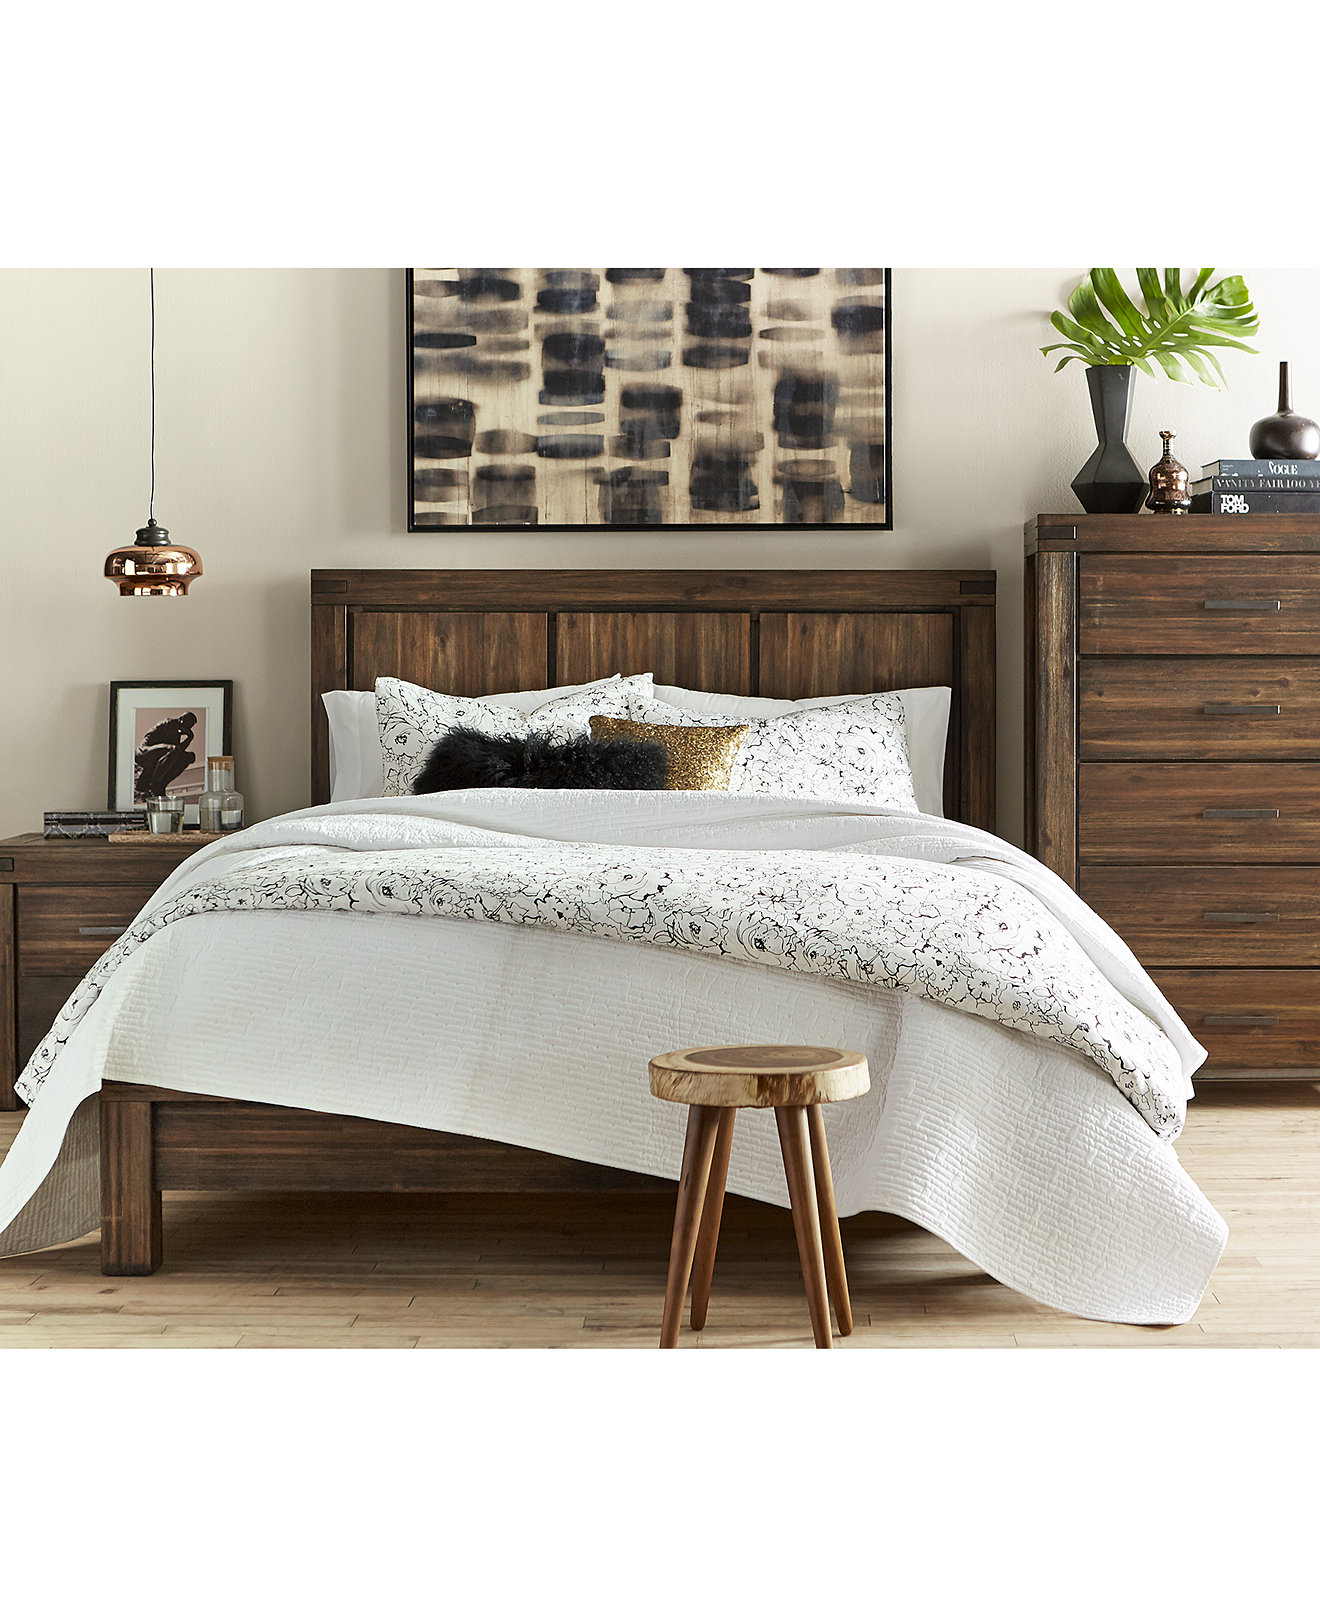 Media Chests Bedroom Bedroom Media Chest Shop For And Buy Bedroom Media Chest Online